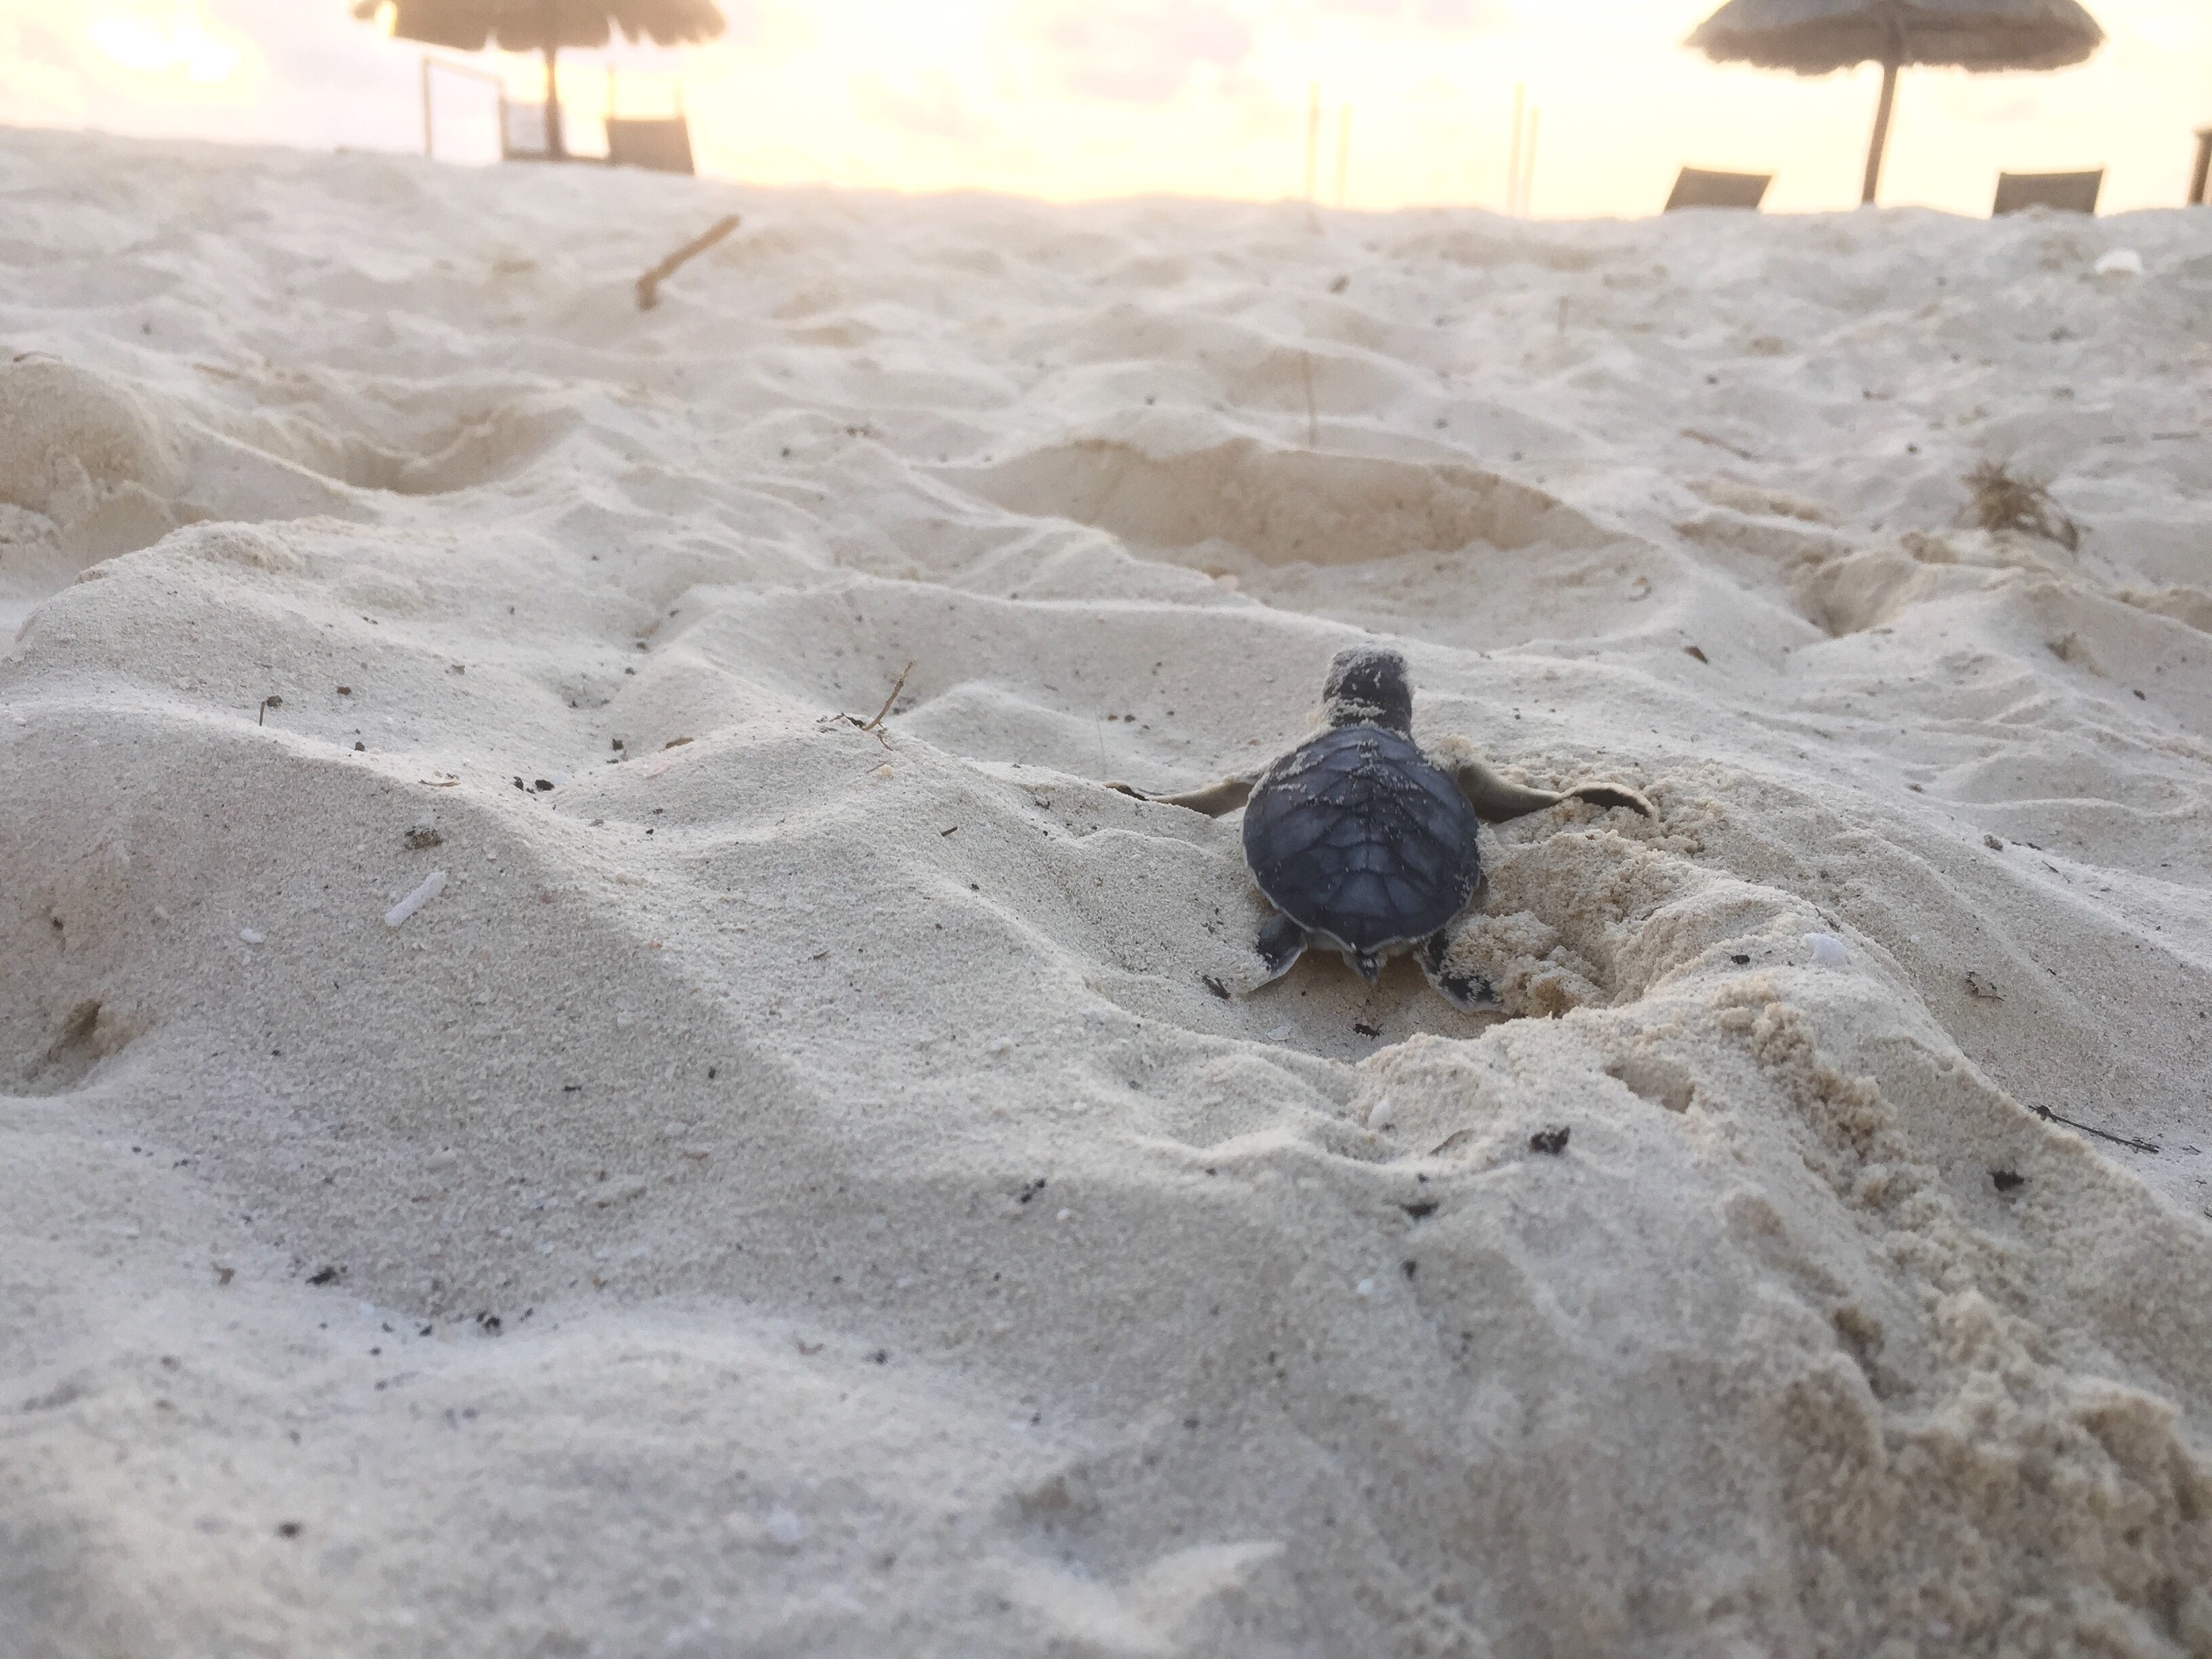 Newly hatched sea turtle heading to the ocean on the beach in Cancun , Mexico Photo copyright Valerie Duty Citrano www.PieLadtLife.com